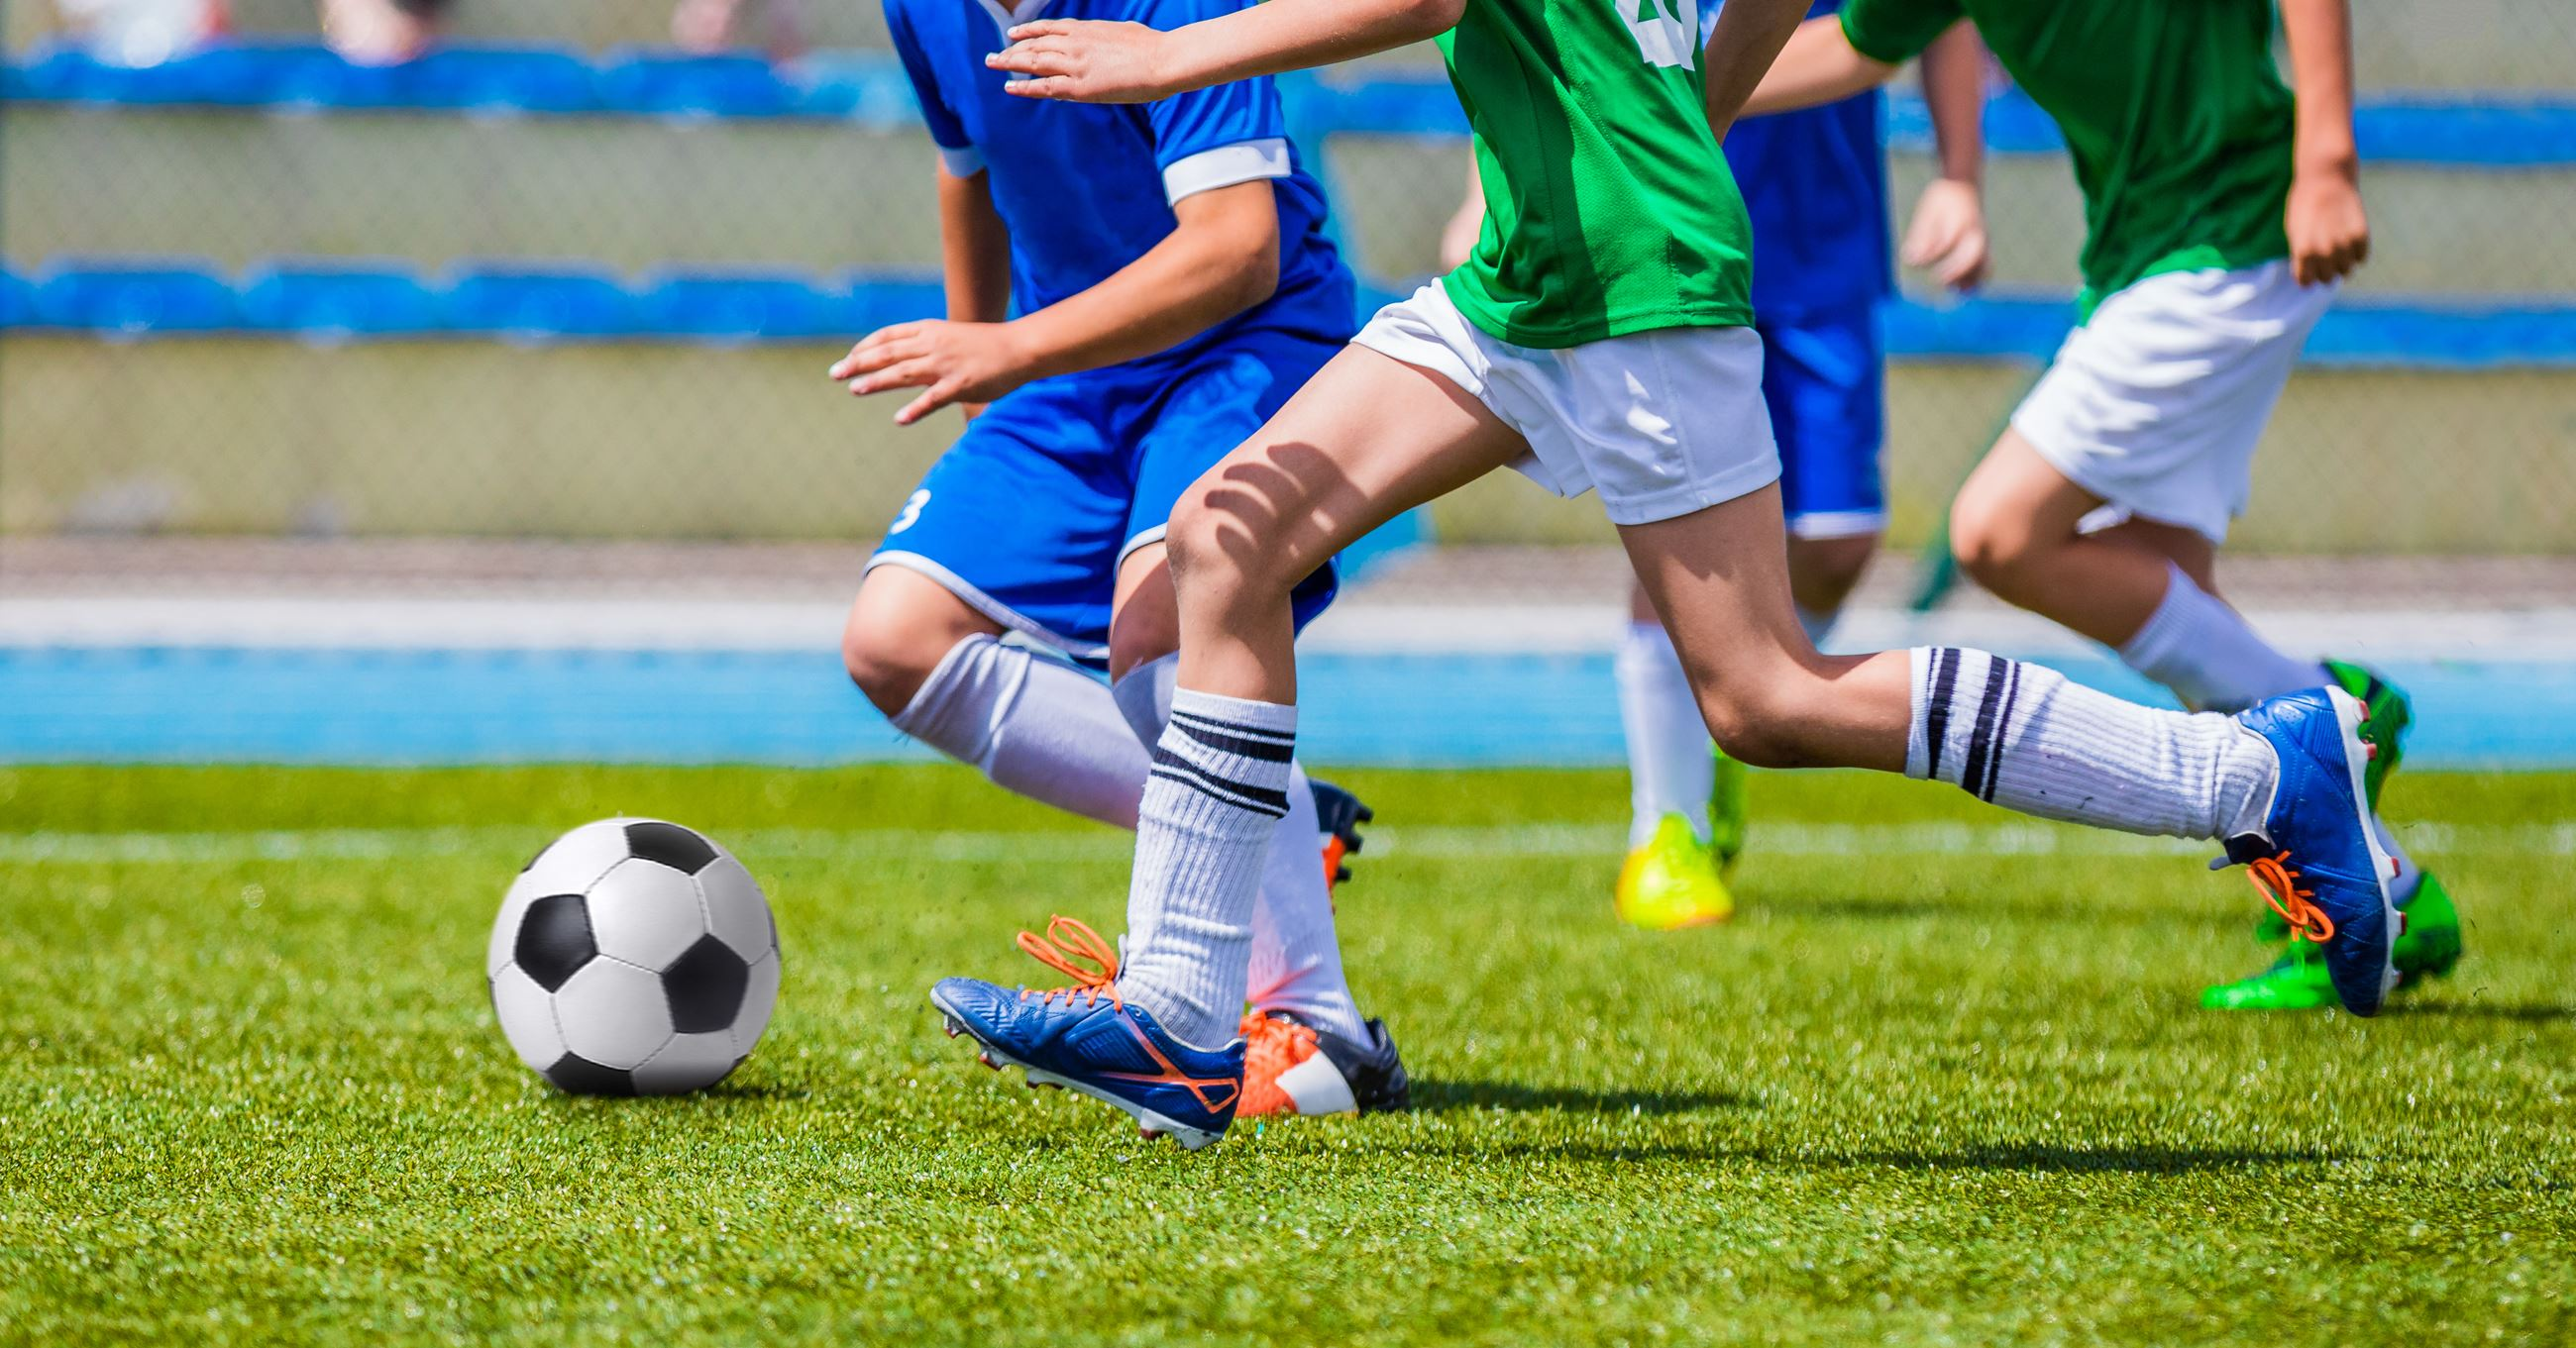 Youth Soccer | Pascagoula, MS